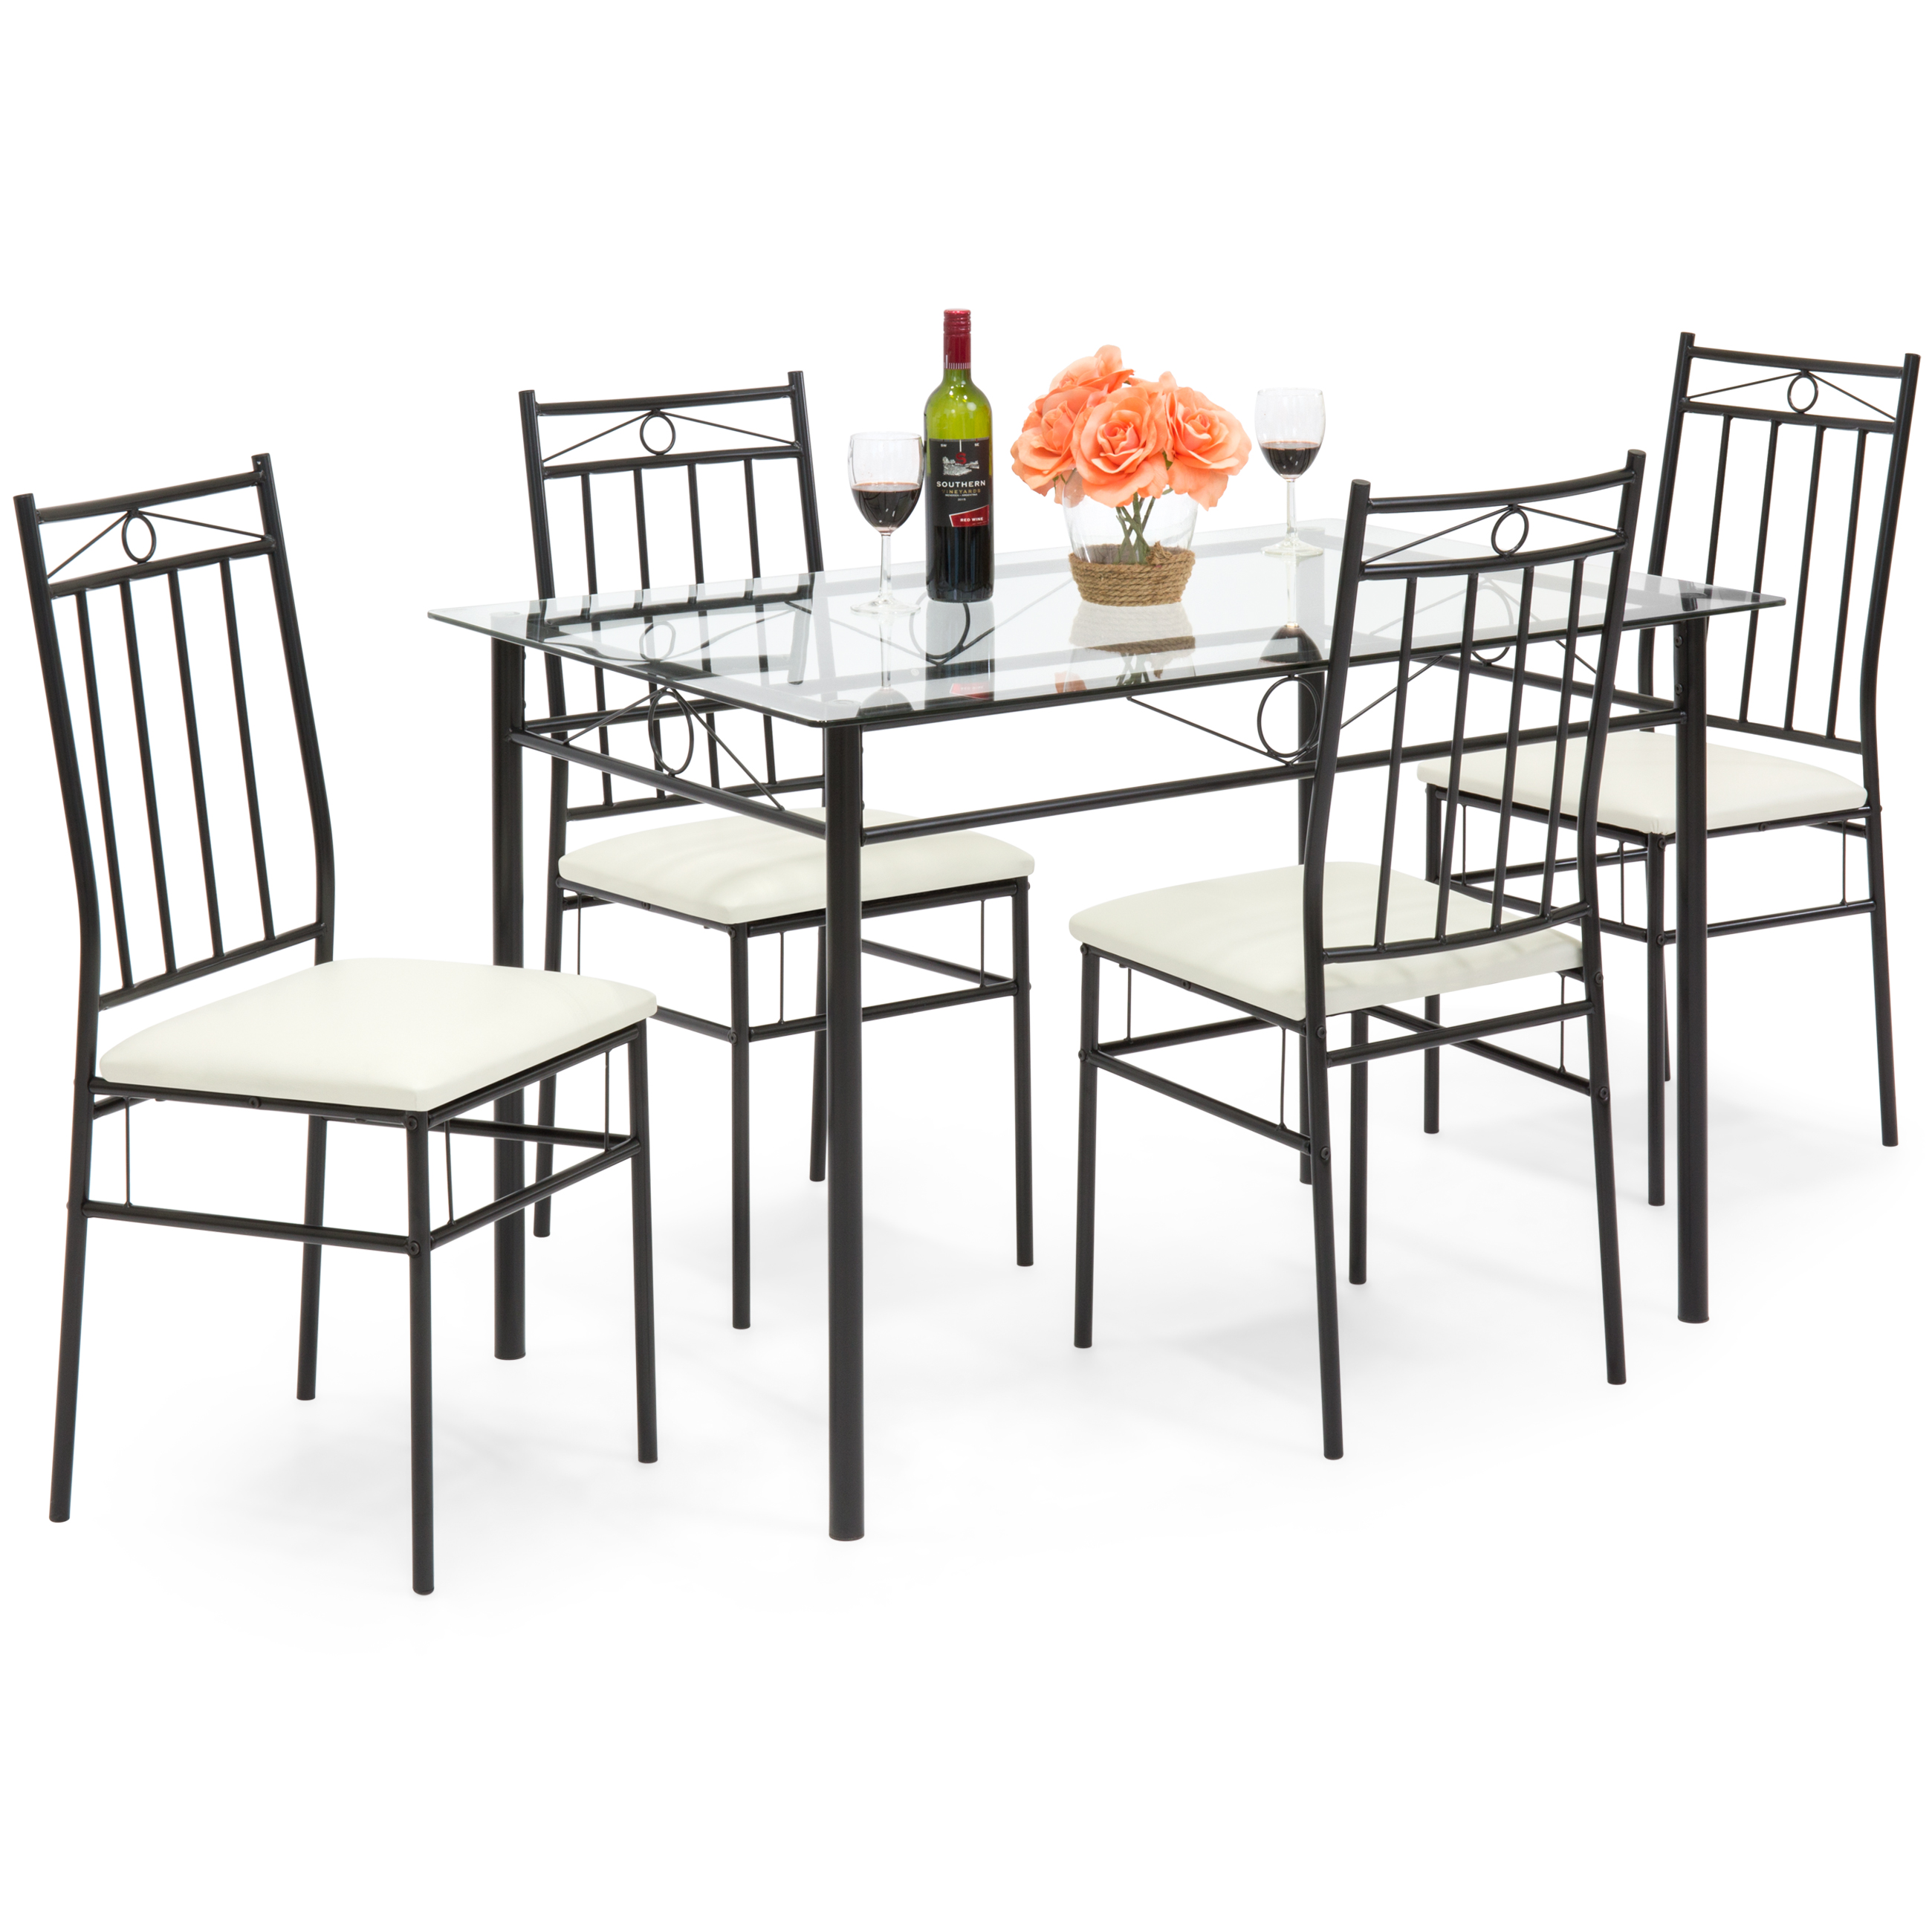 Best Choice Products 5-Piece Glass Table Dining Room Set w  Chairs (White) by Best Choice Products